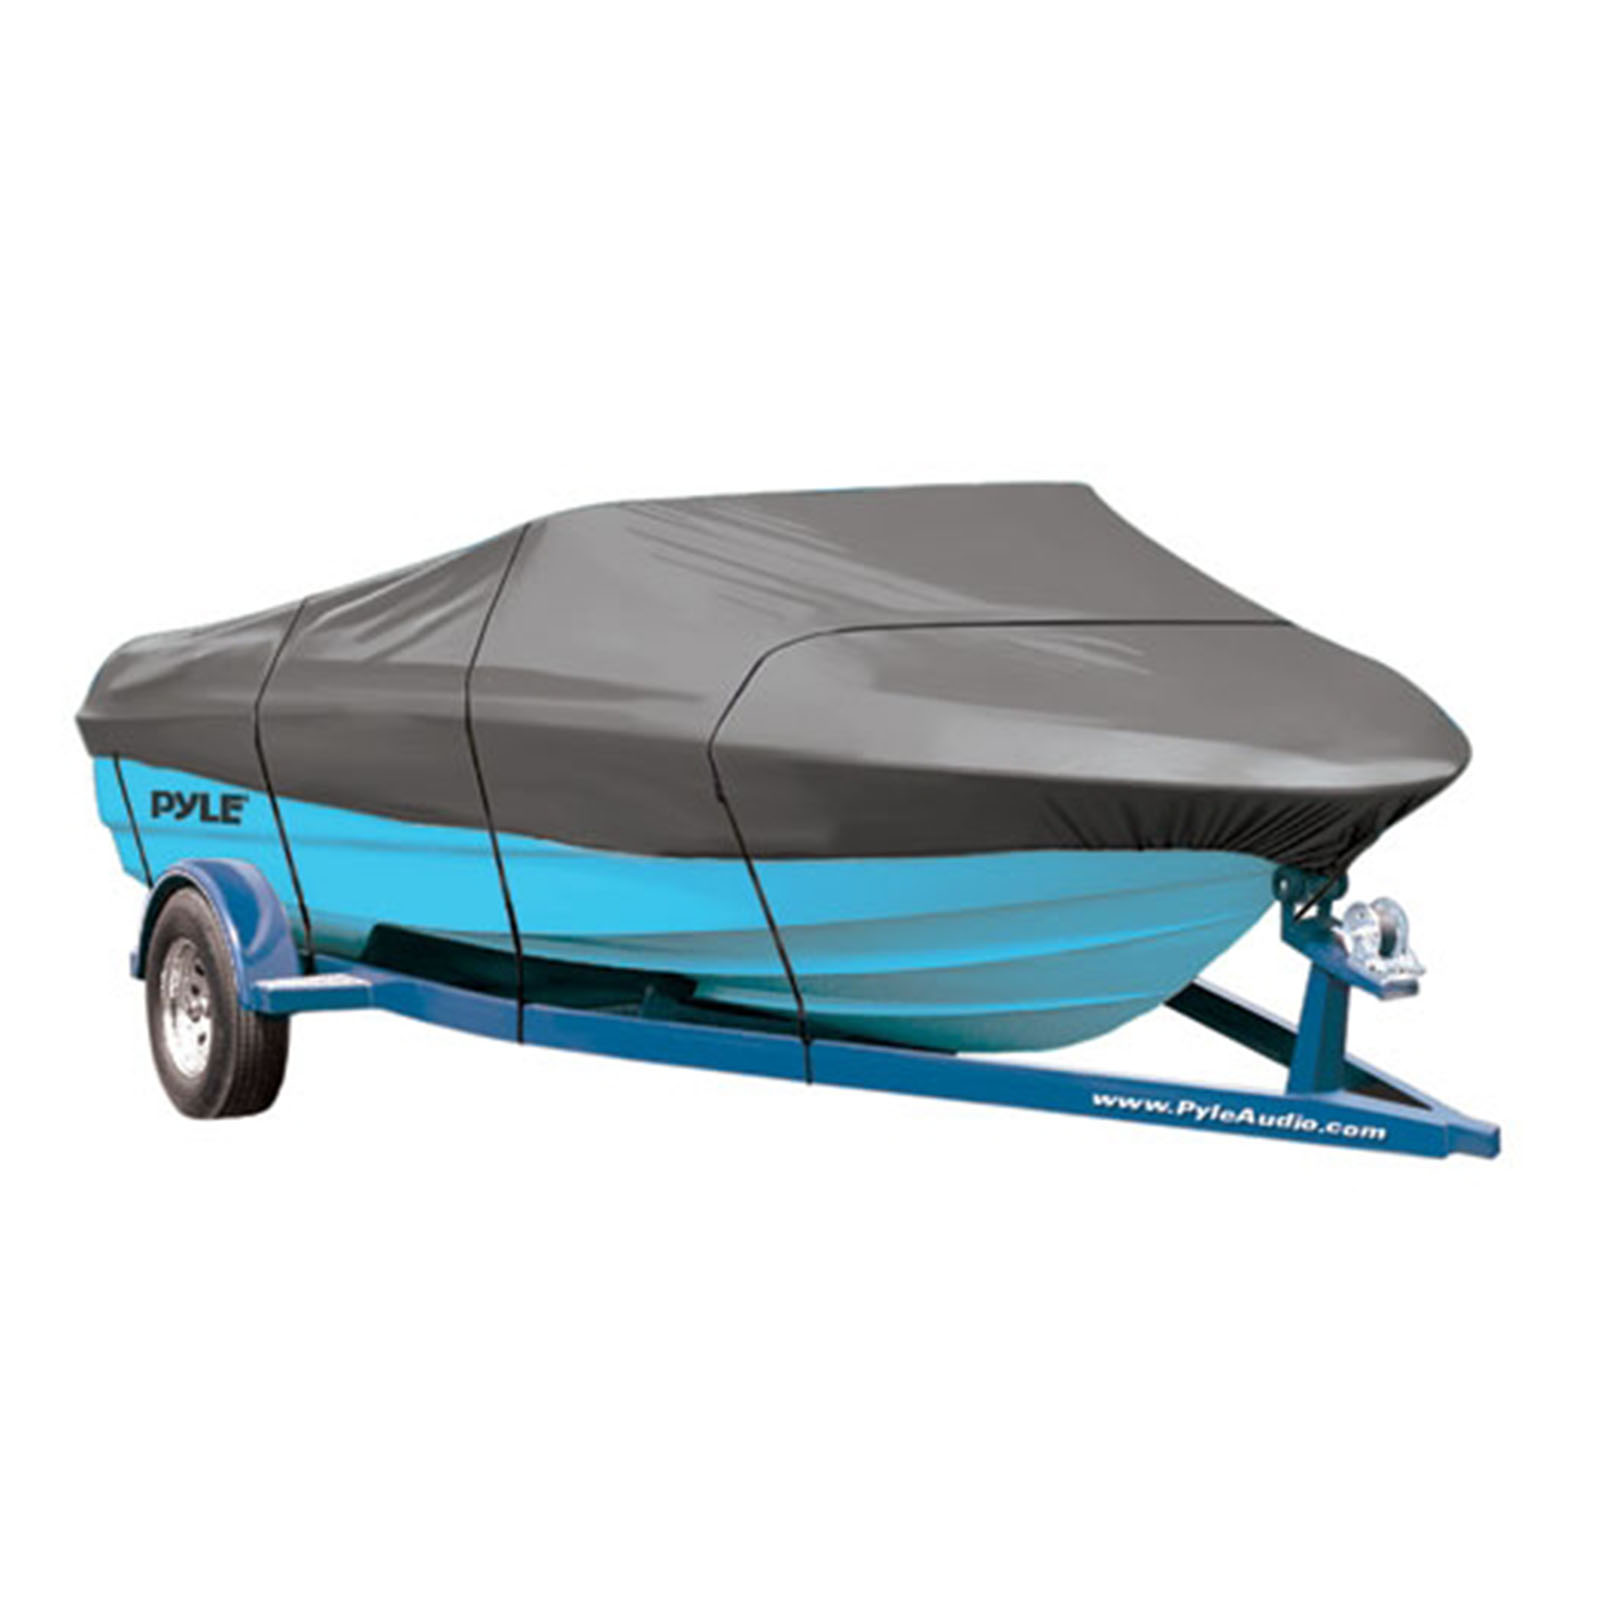 "Armor Shield Trailer Master Boat Cover 16'-18.5'L Beam Width to 98"" Fish, Ski Boats, & Pro Style Bass Boats by Pyle"